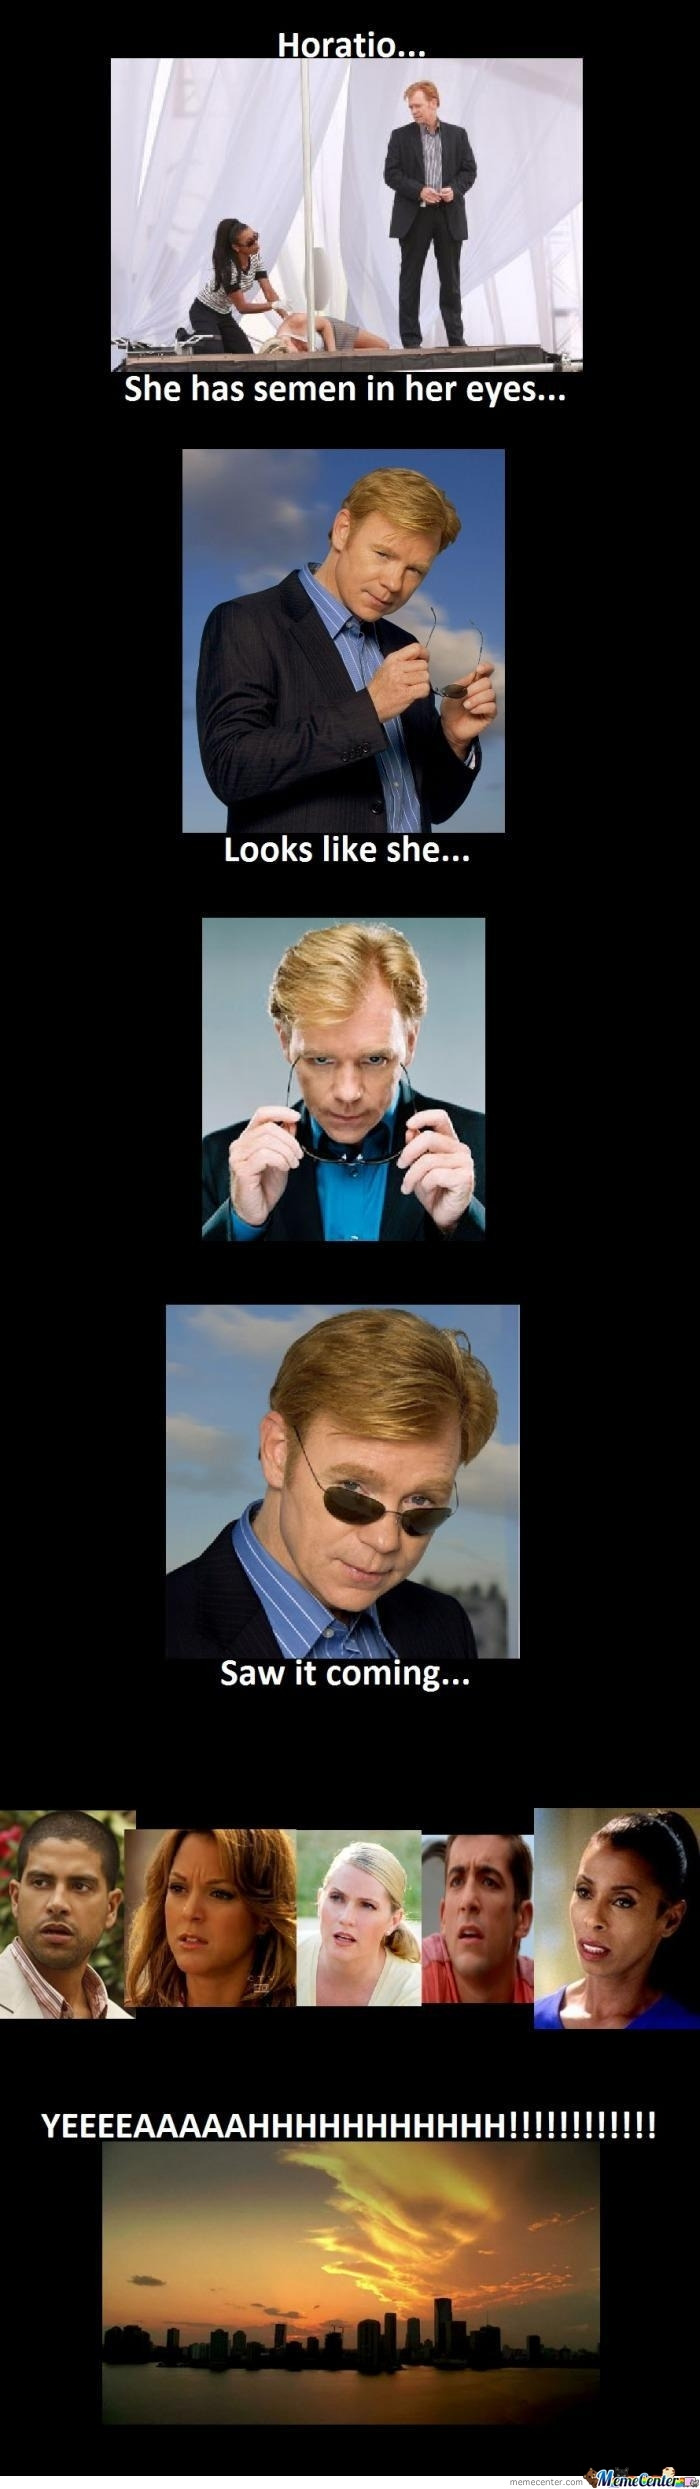 She Saw It Co... Oh! I See What You Did There, Horatio..